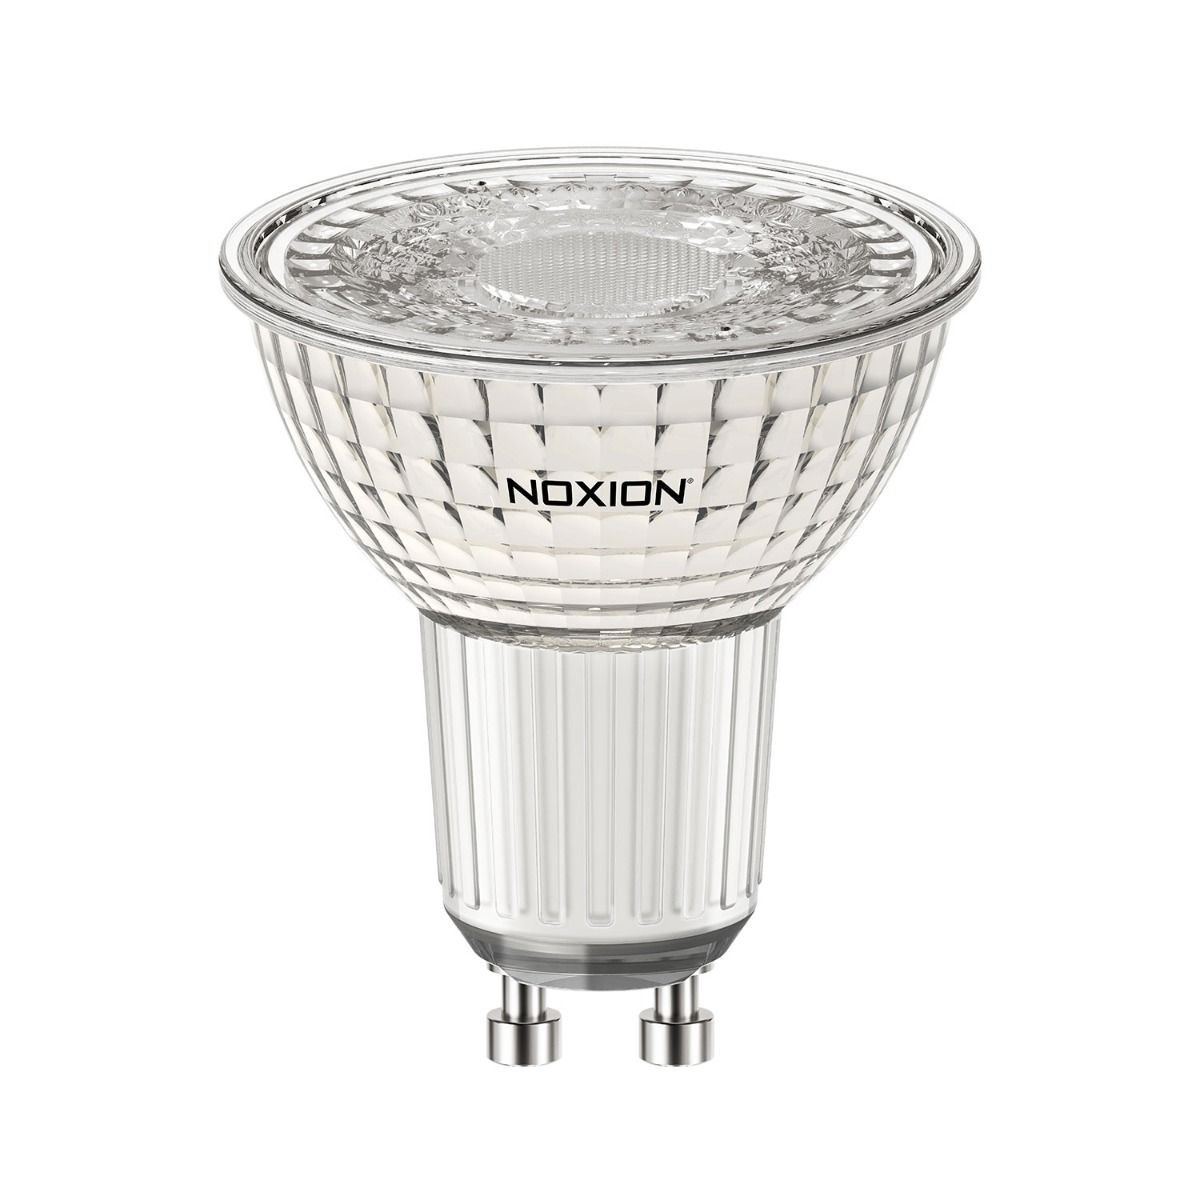 Noxion LED Spot PerfectColor GU10 5.5W 930 60D 430lm | Dimbaar - Warm Wit - Vervangt 50W